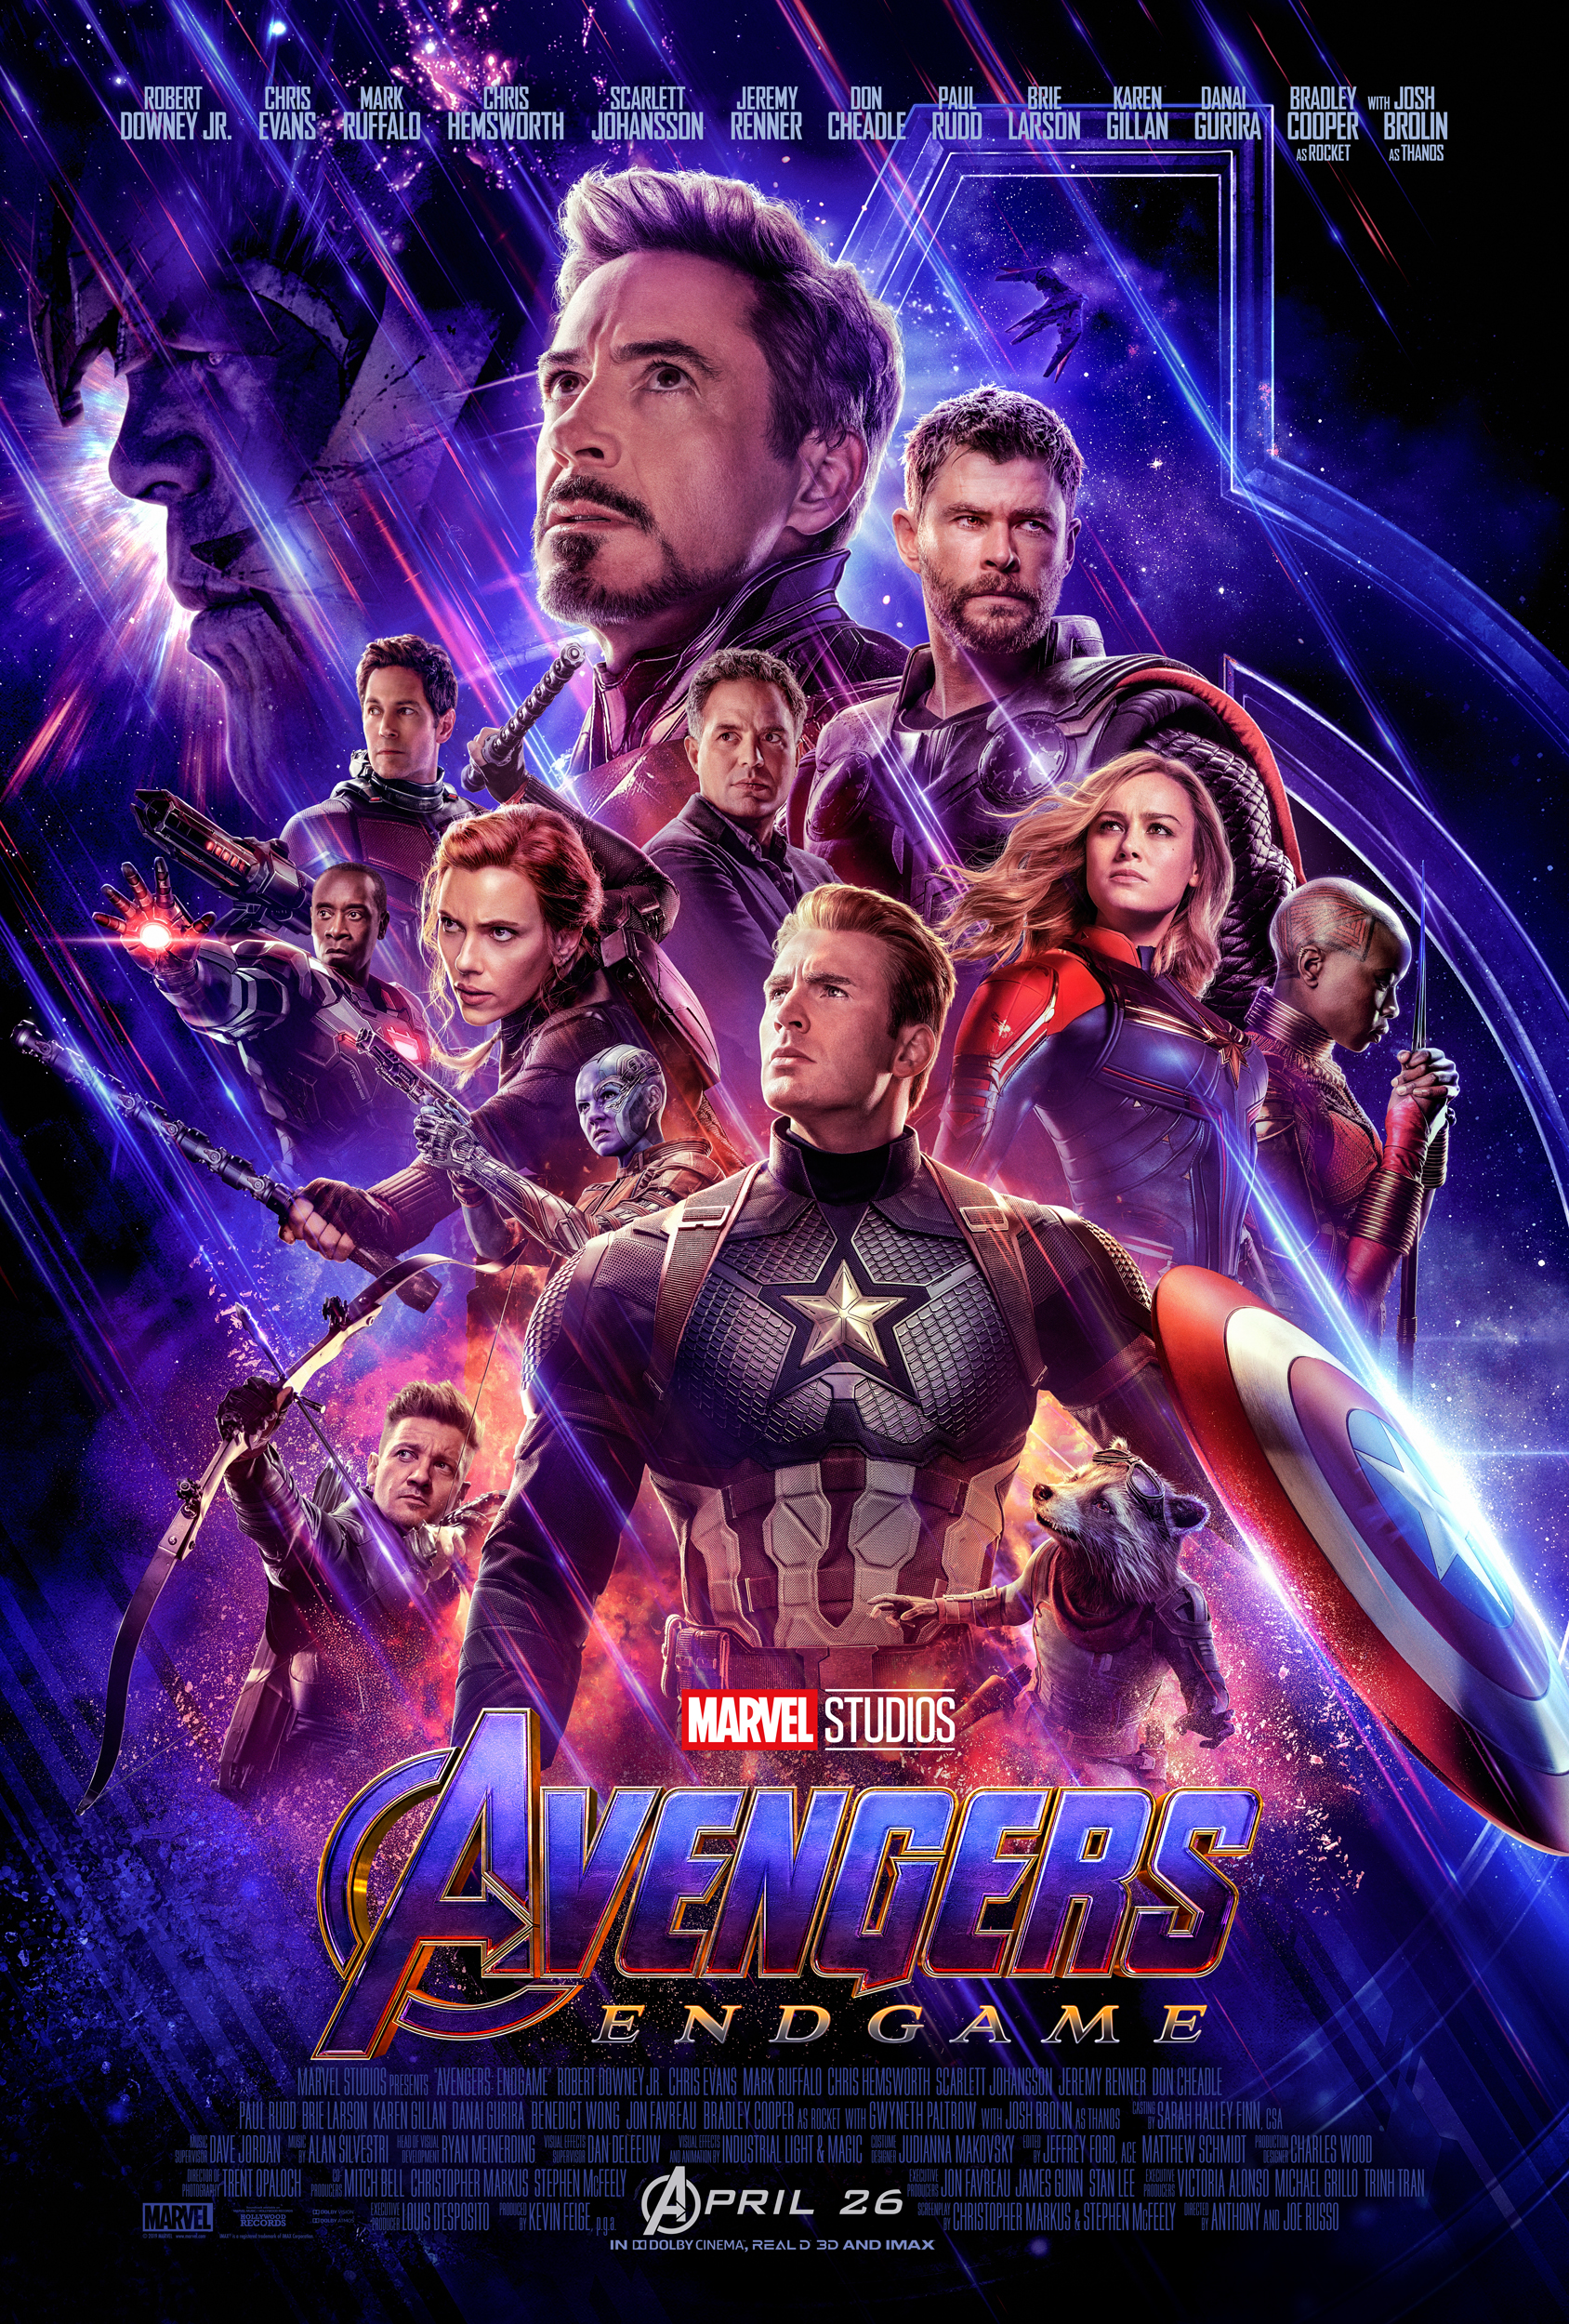 A few things, before Avengers: Endgame